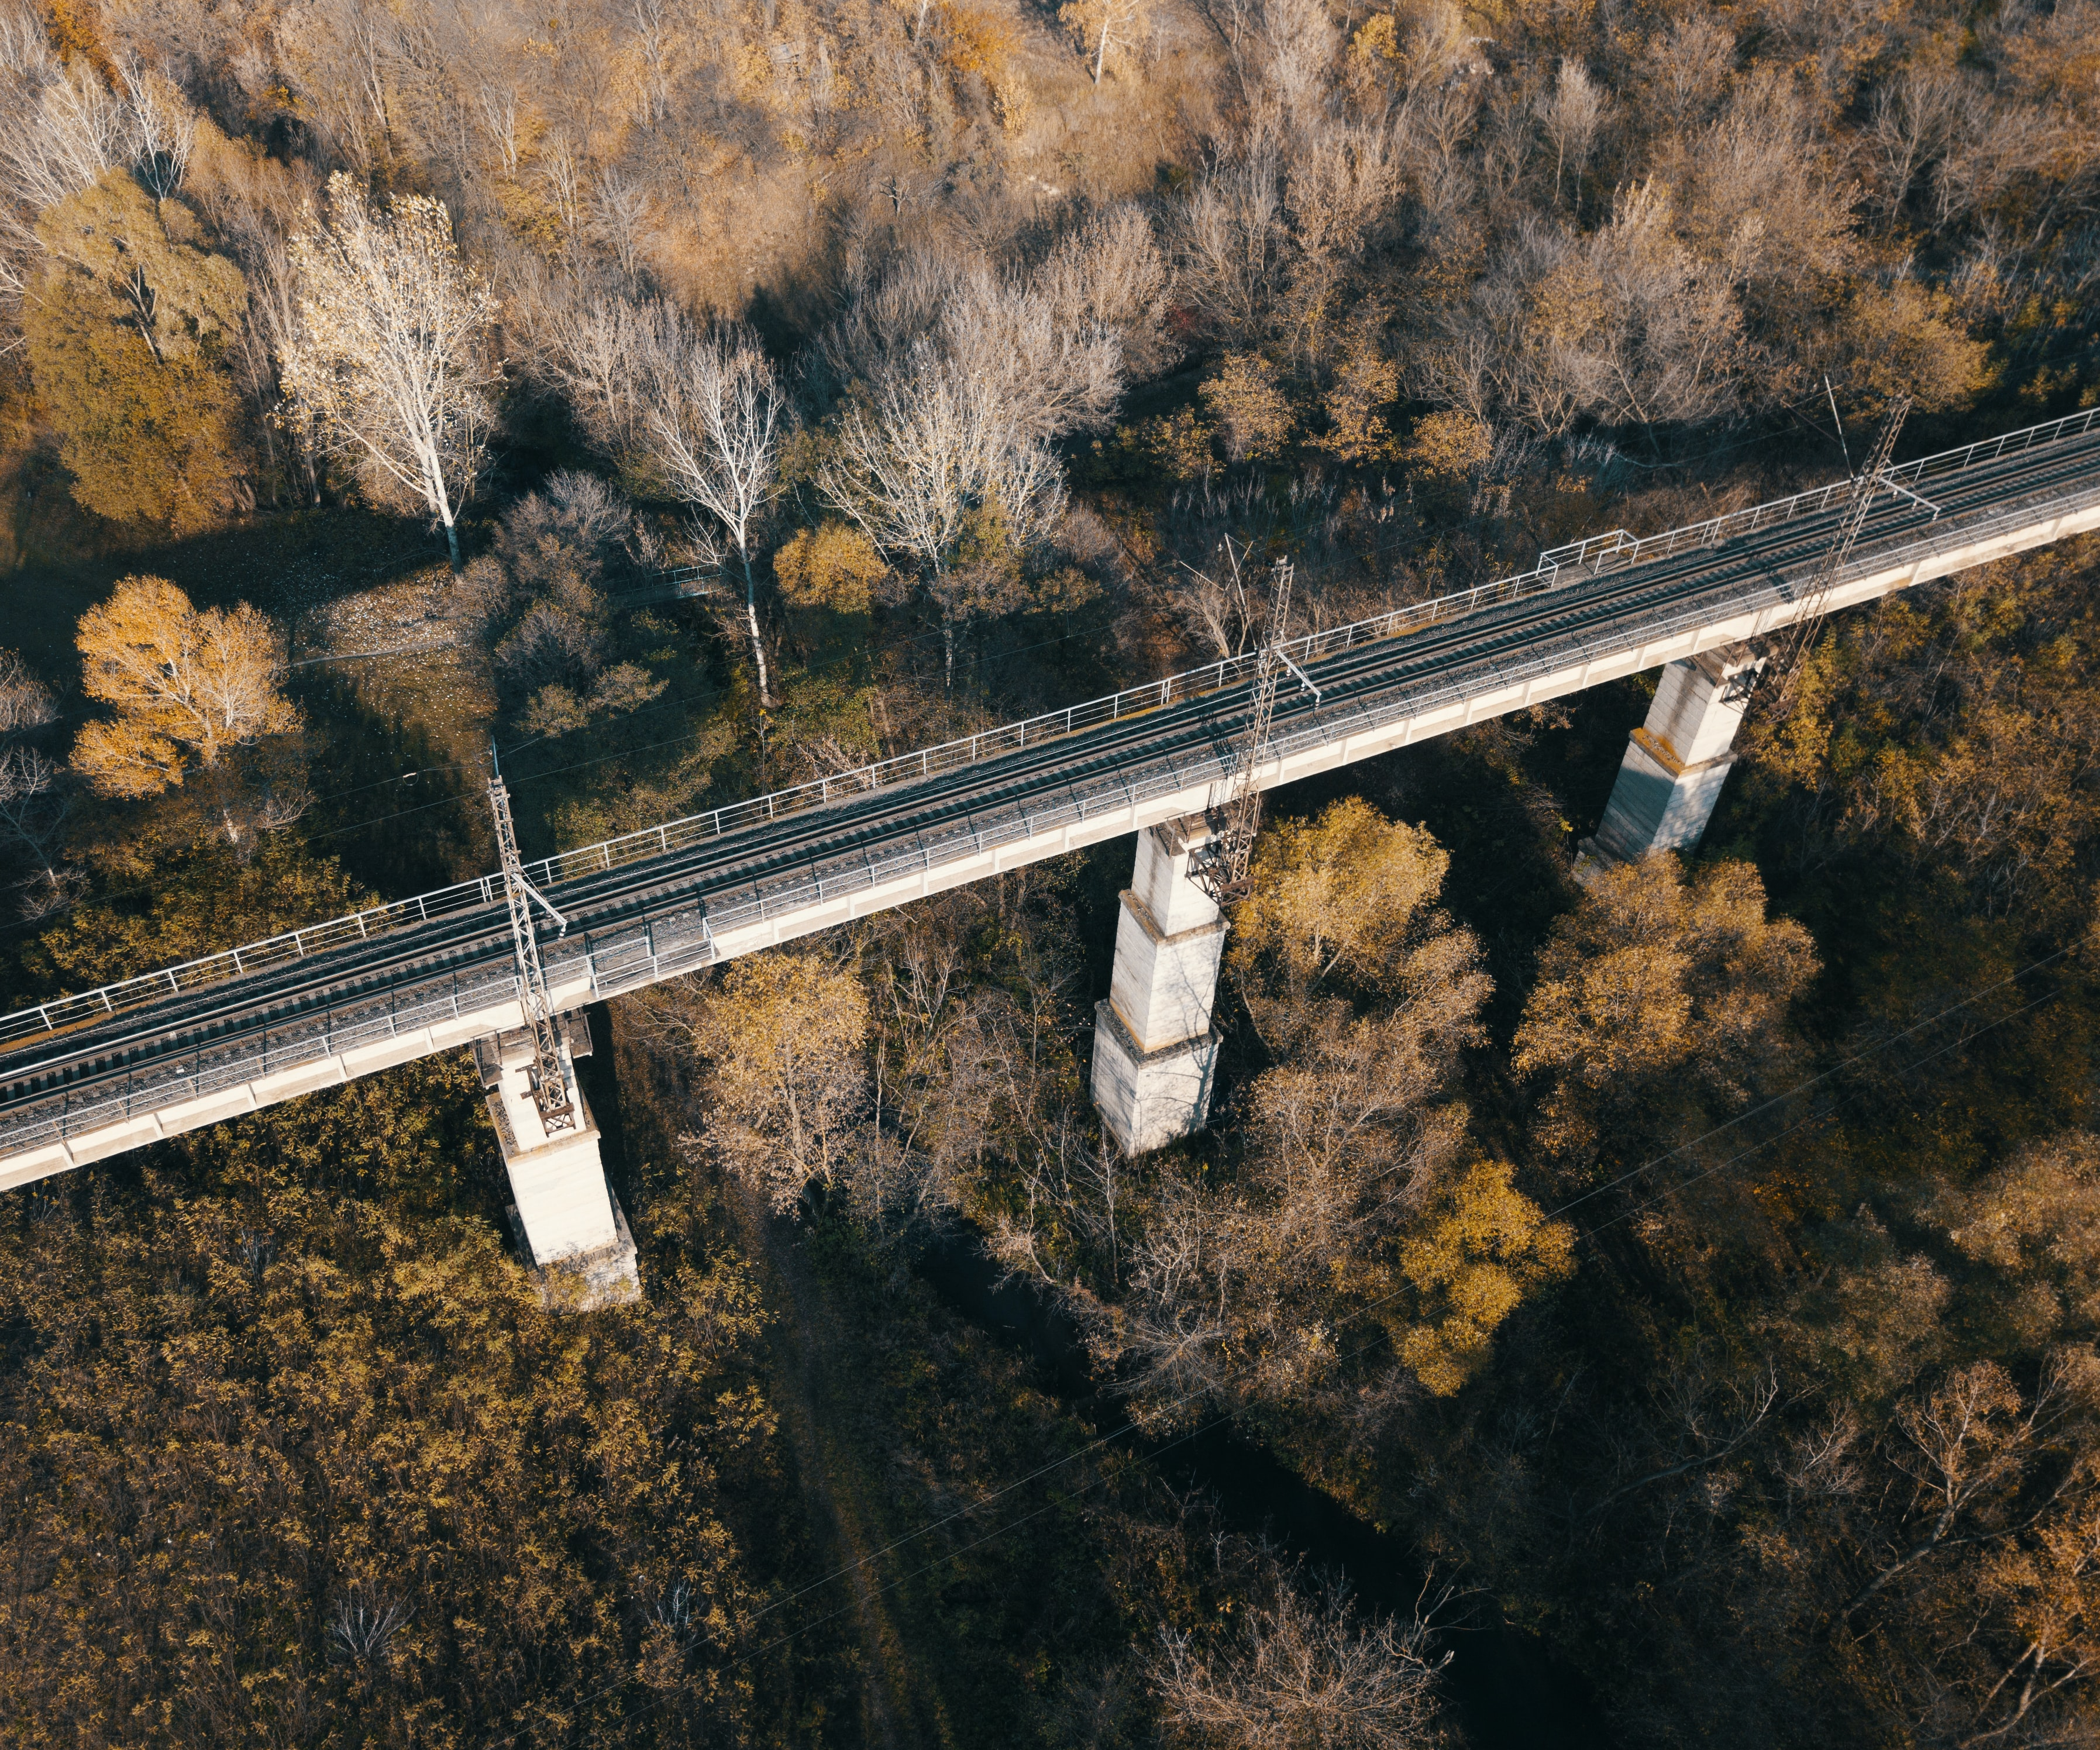 bird's-eye view photography of bridge in between leafed trees